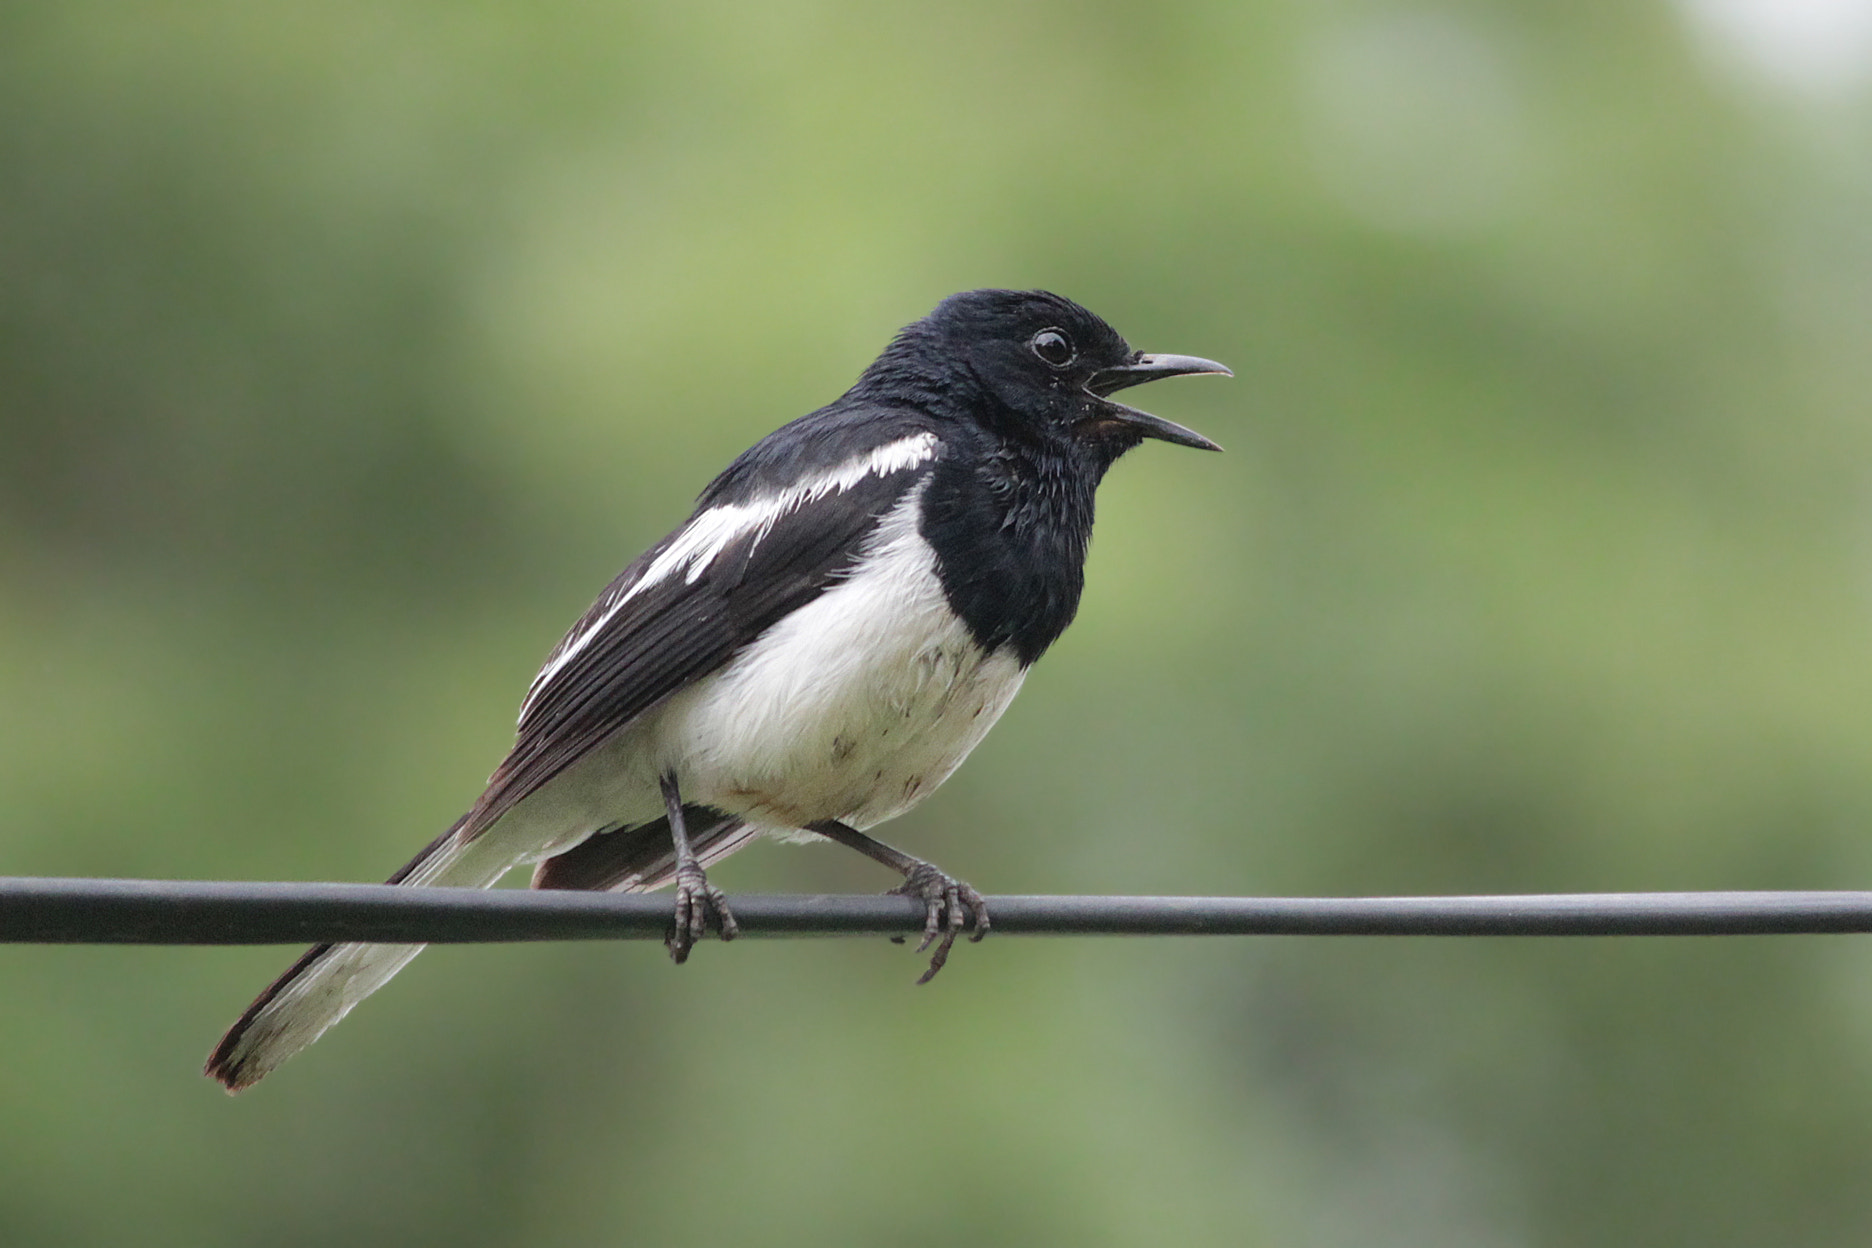 Photograph The oriental magpie-robin (Copsychus saularis) by Subhash Masih on 500px